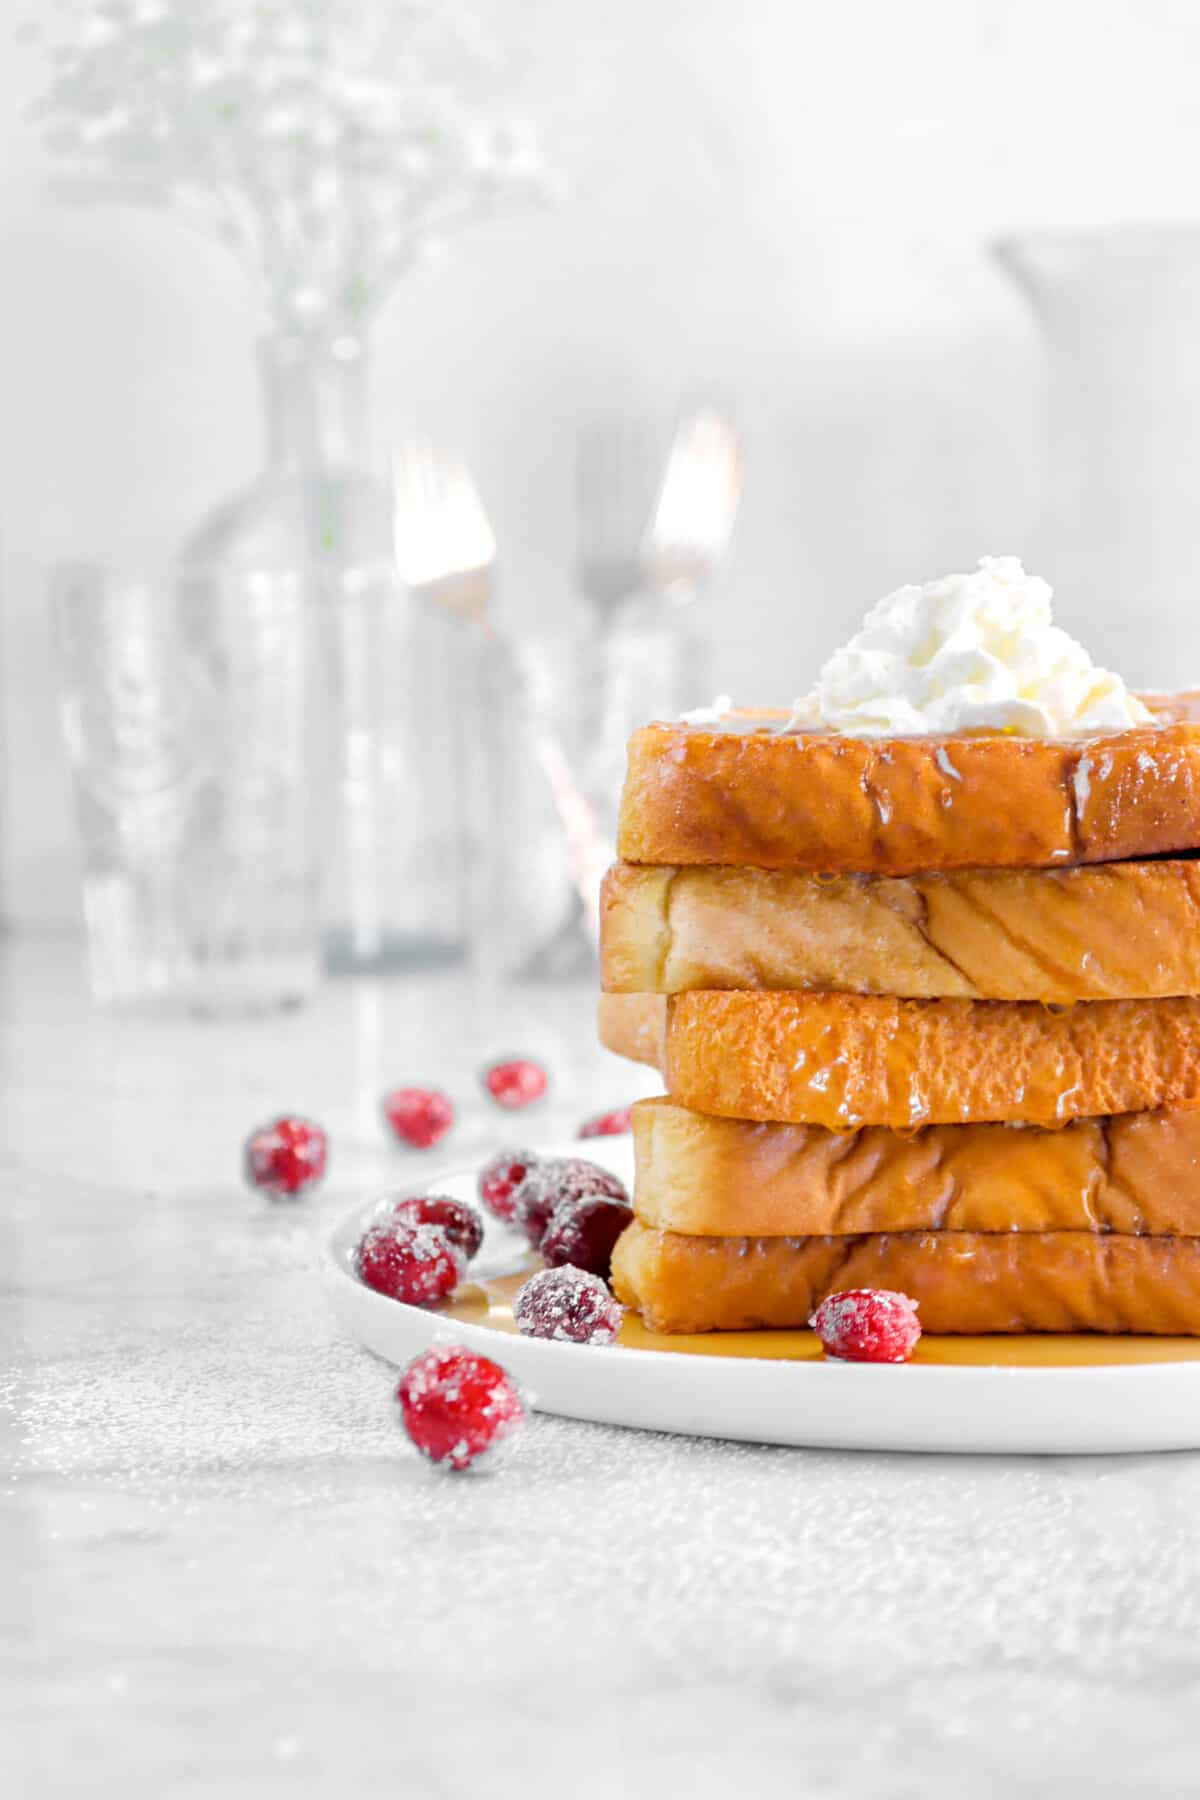 french toast on a plate with glassed behind and cranberries